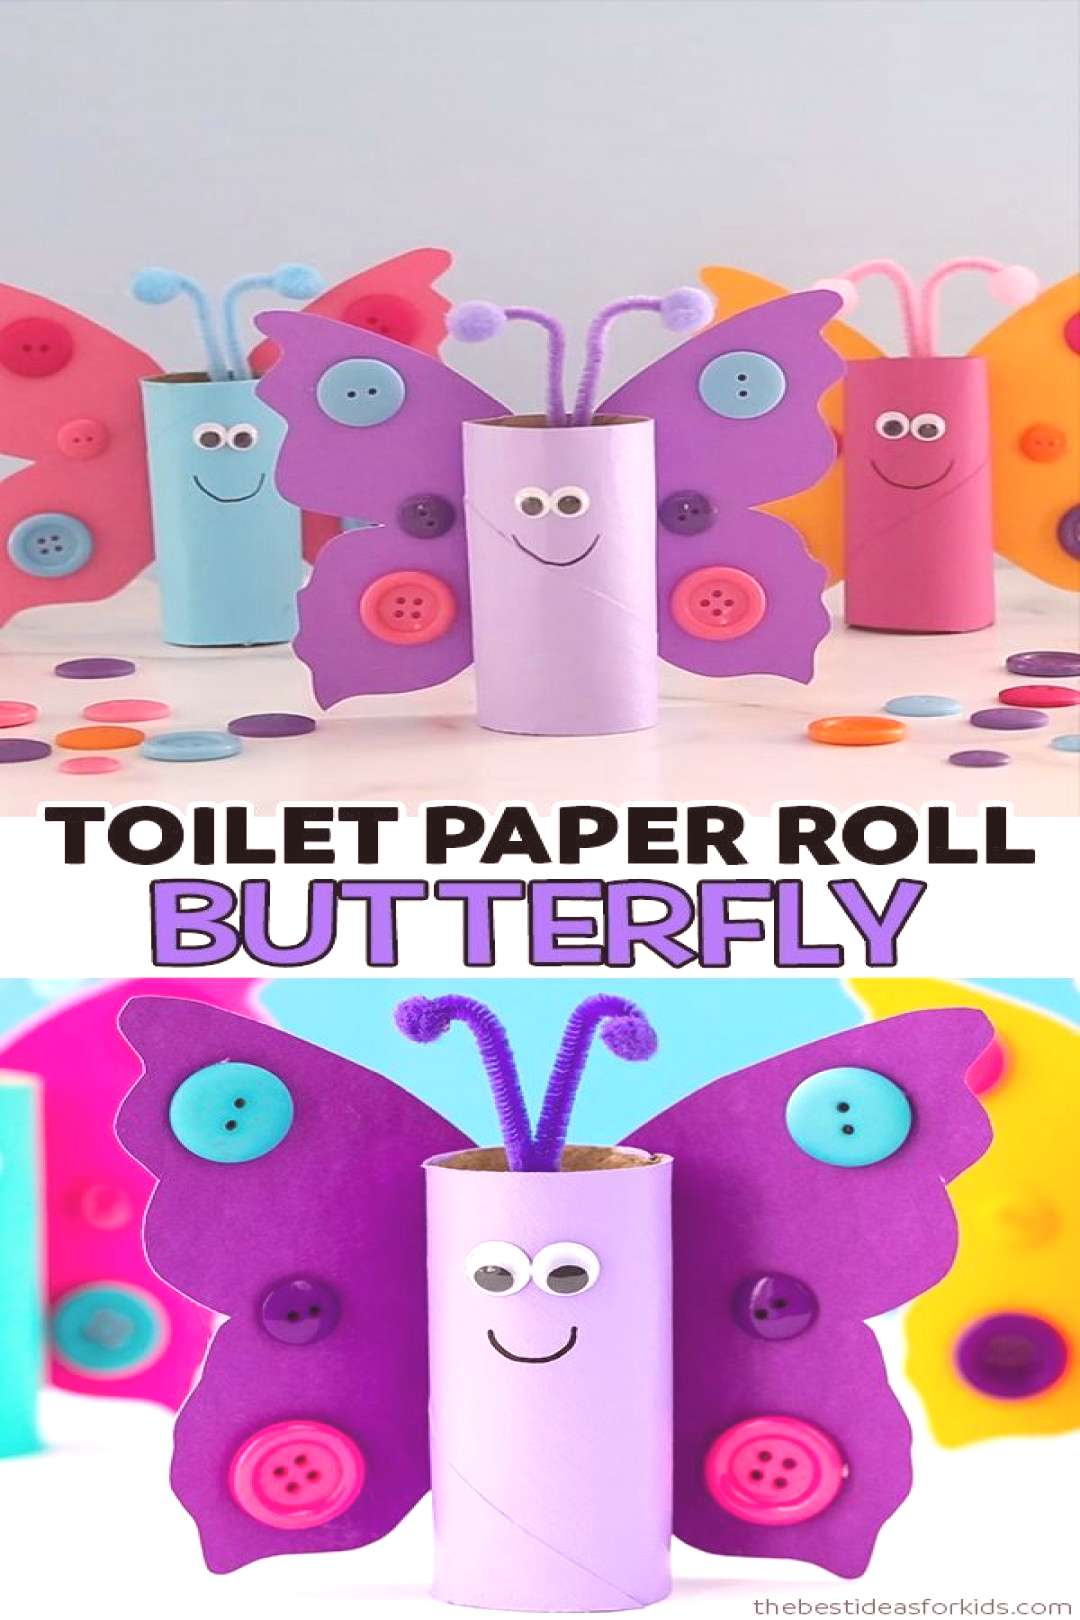 TOILET PAPER ROLL BUTTERFLY TOILET PAPER ROLL BUTTERFLY ? - such a cute butterfly craft for kids